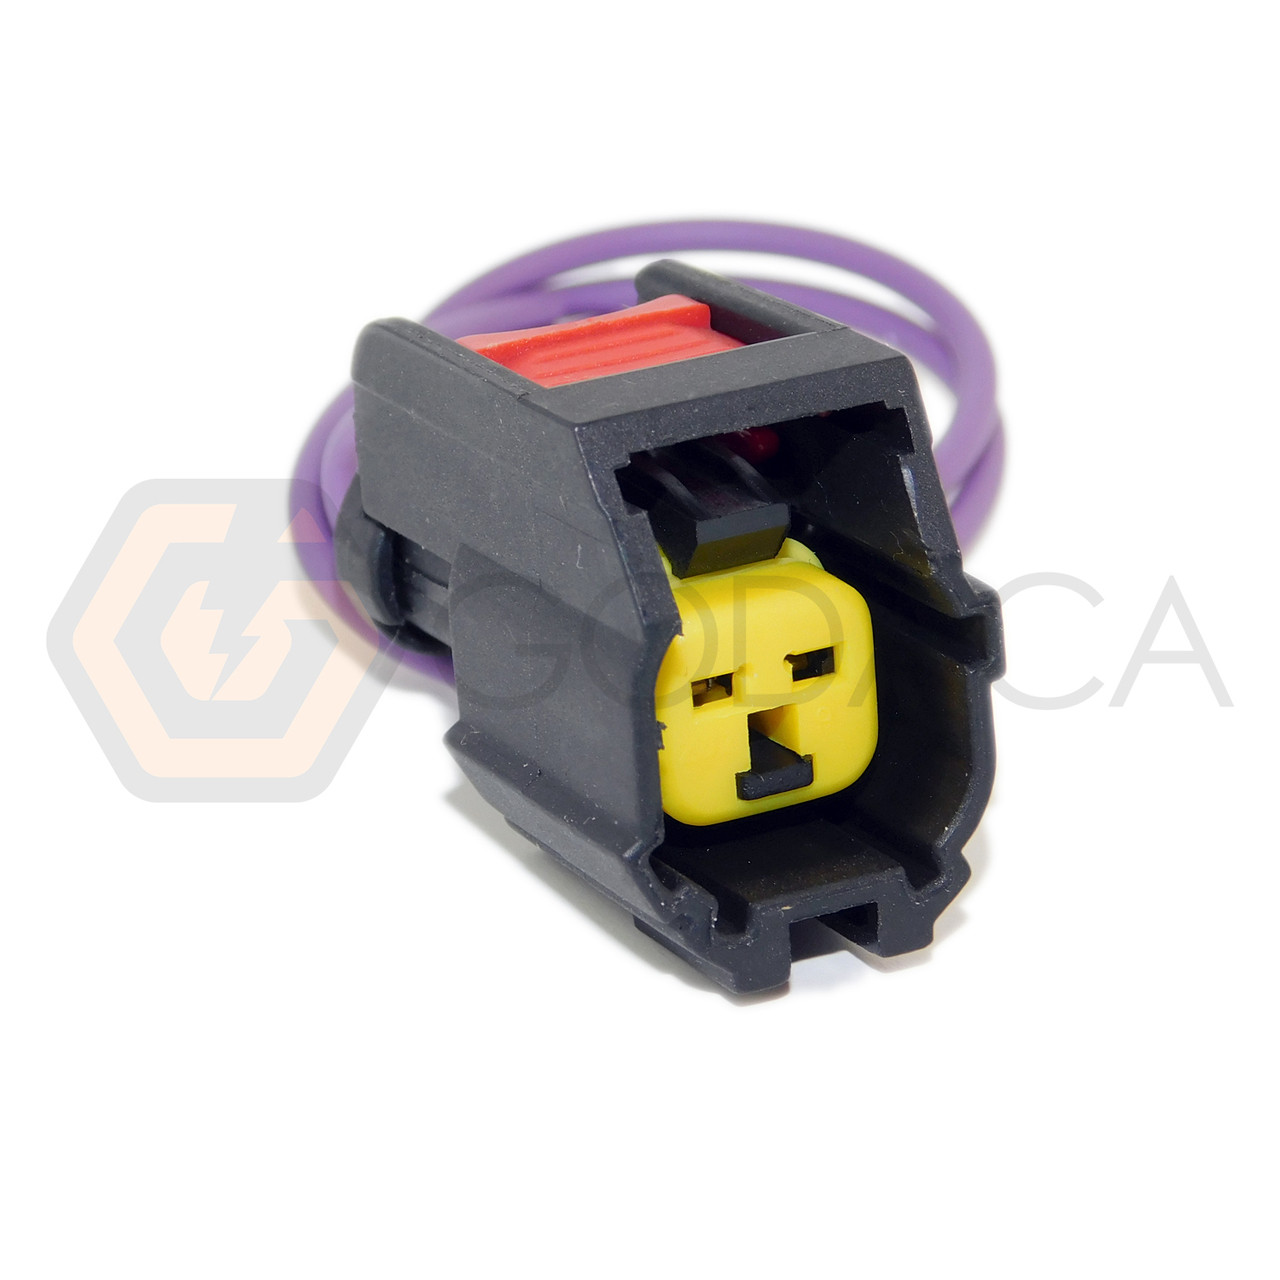 small resolution of 1 x connector pigtail female fuel injector electrical wire harness 2 way godaca llc